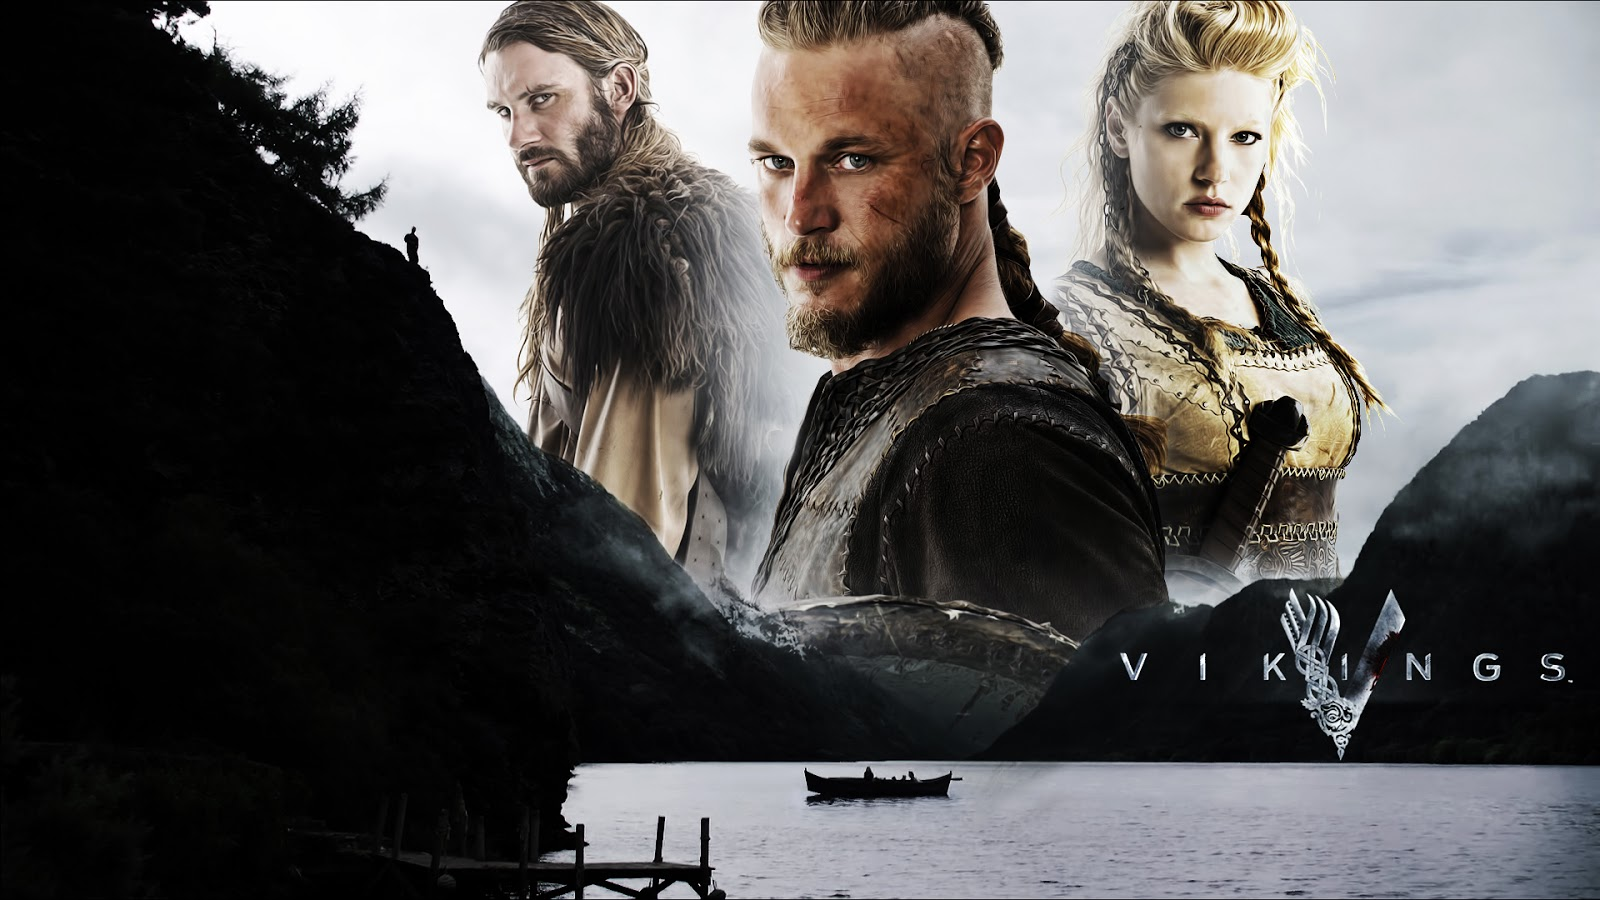 Vikings tapeta1